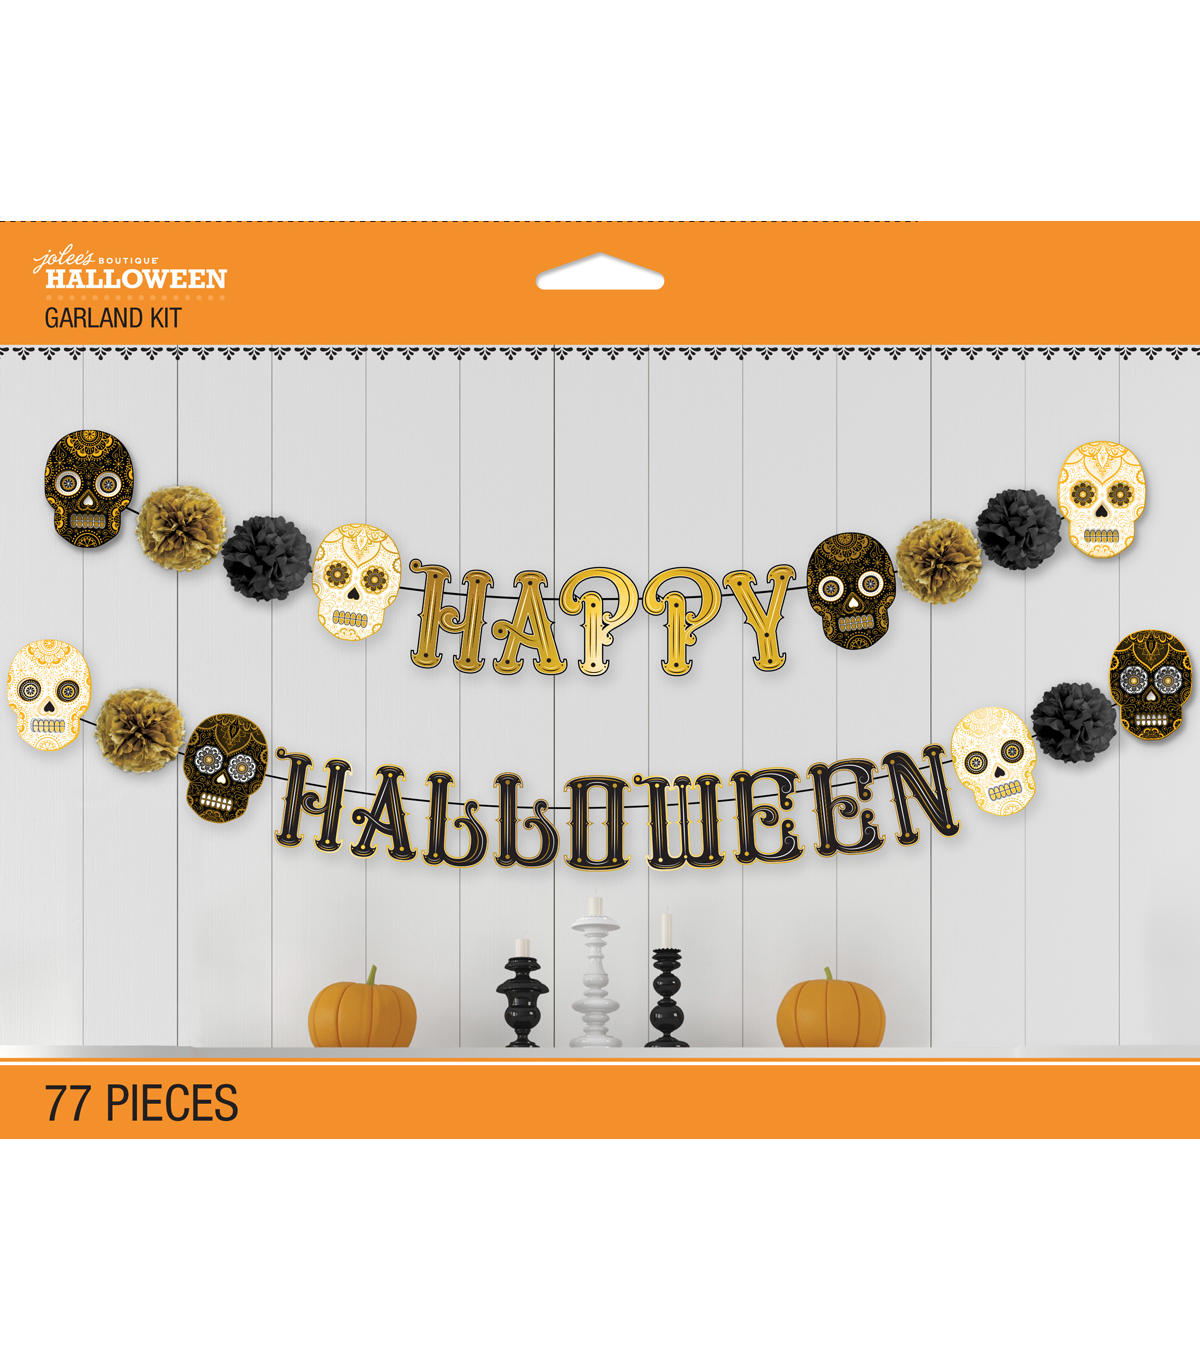 Jolee's Boutique Day Of The Dead Garland Kit